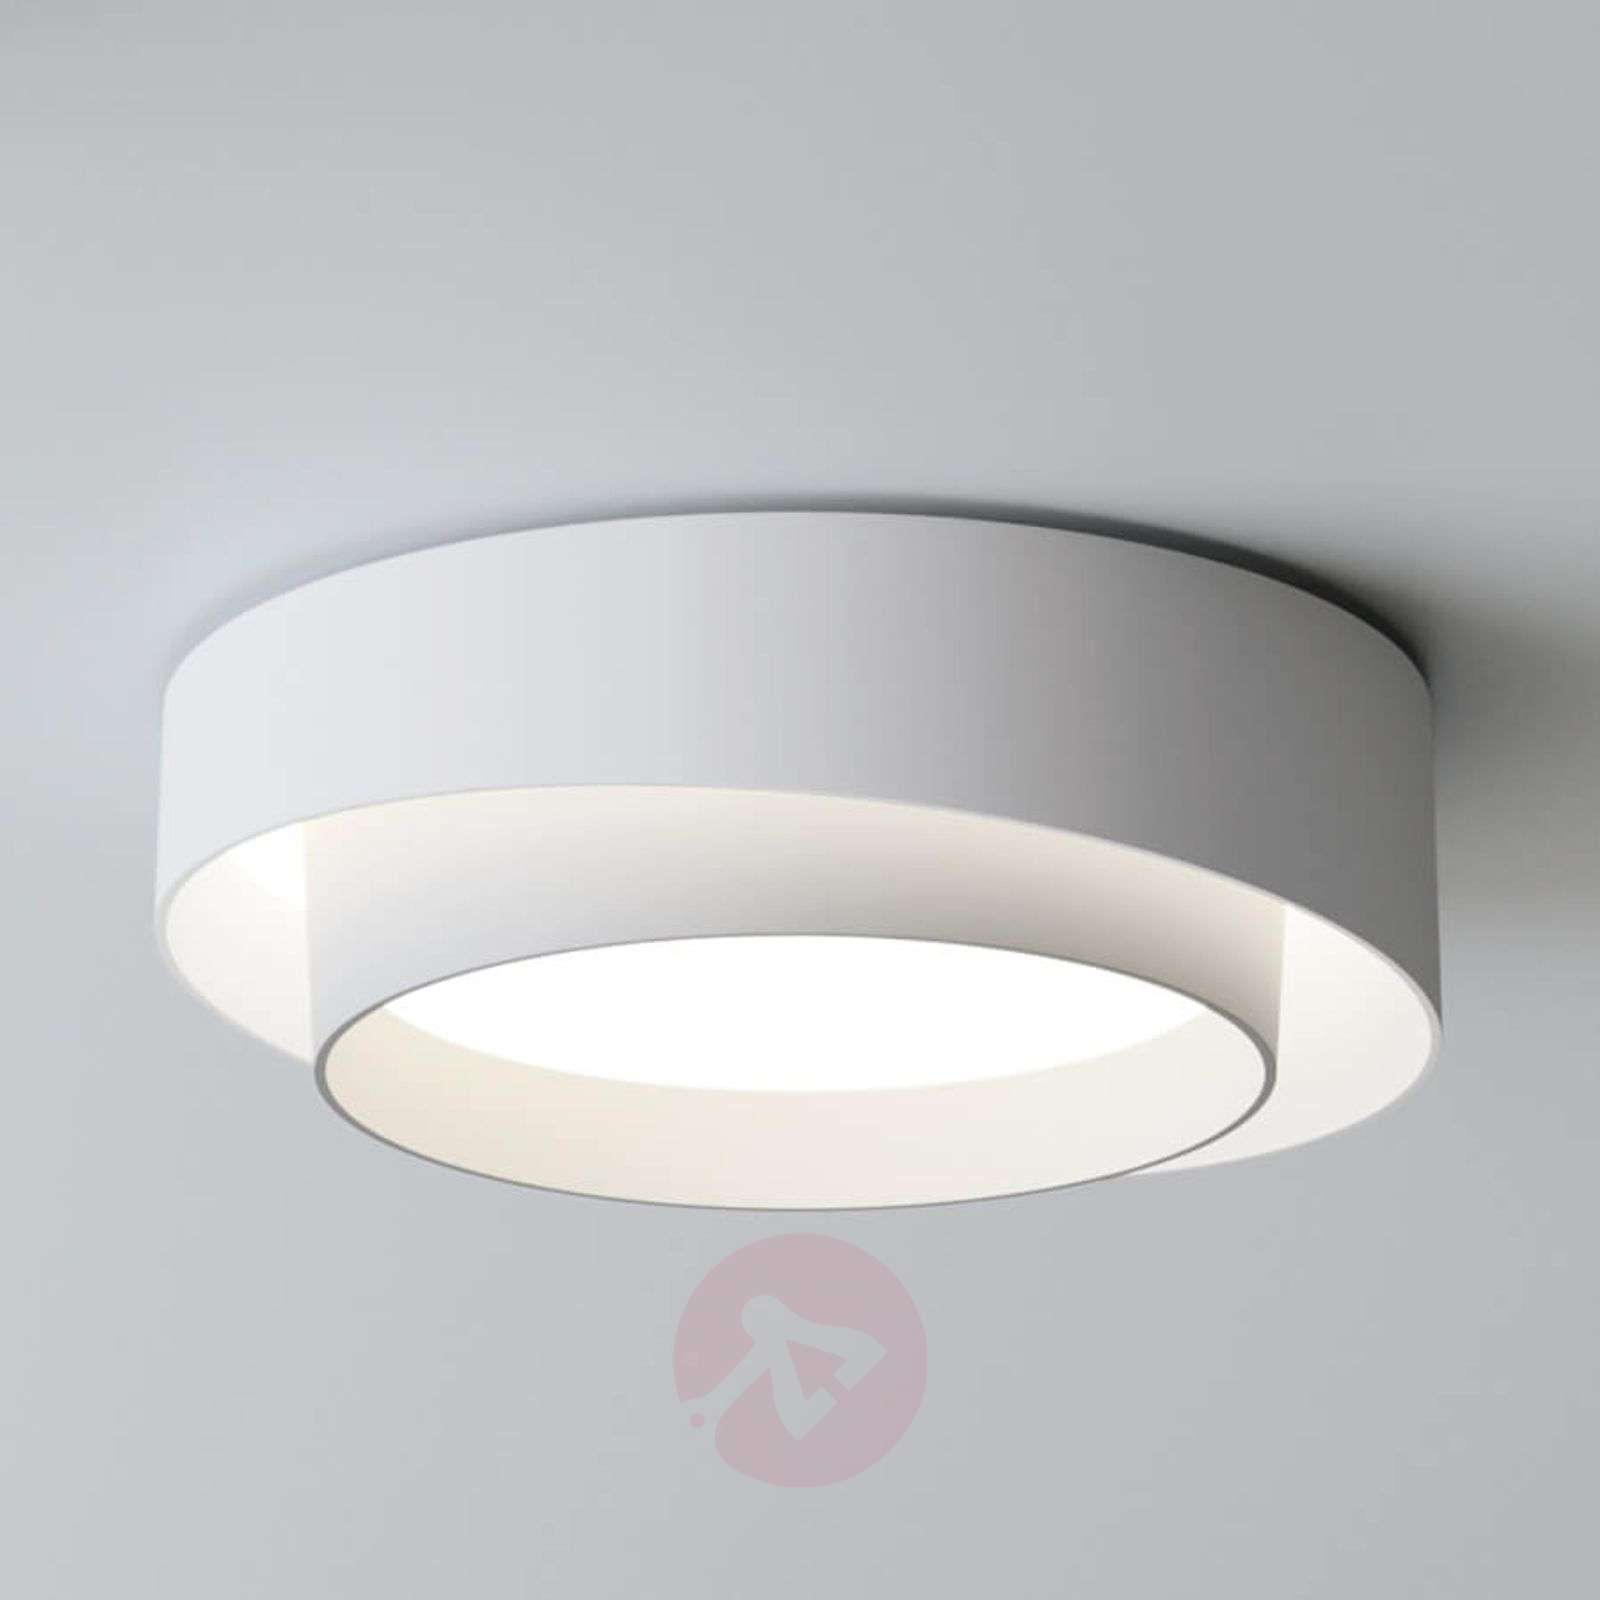 Compra l mpara de techo led de dise o centric blanca for Lamparas led diseno